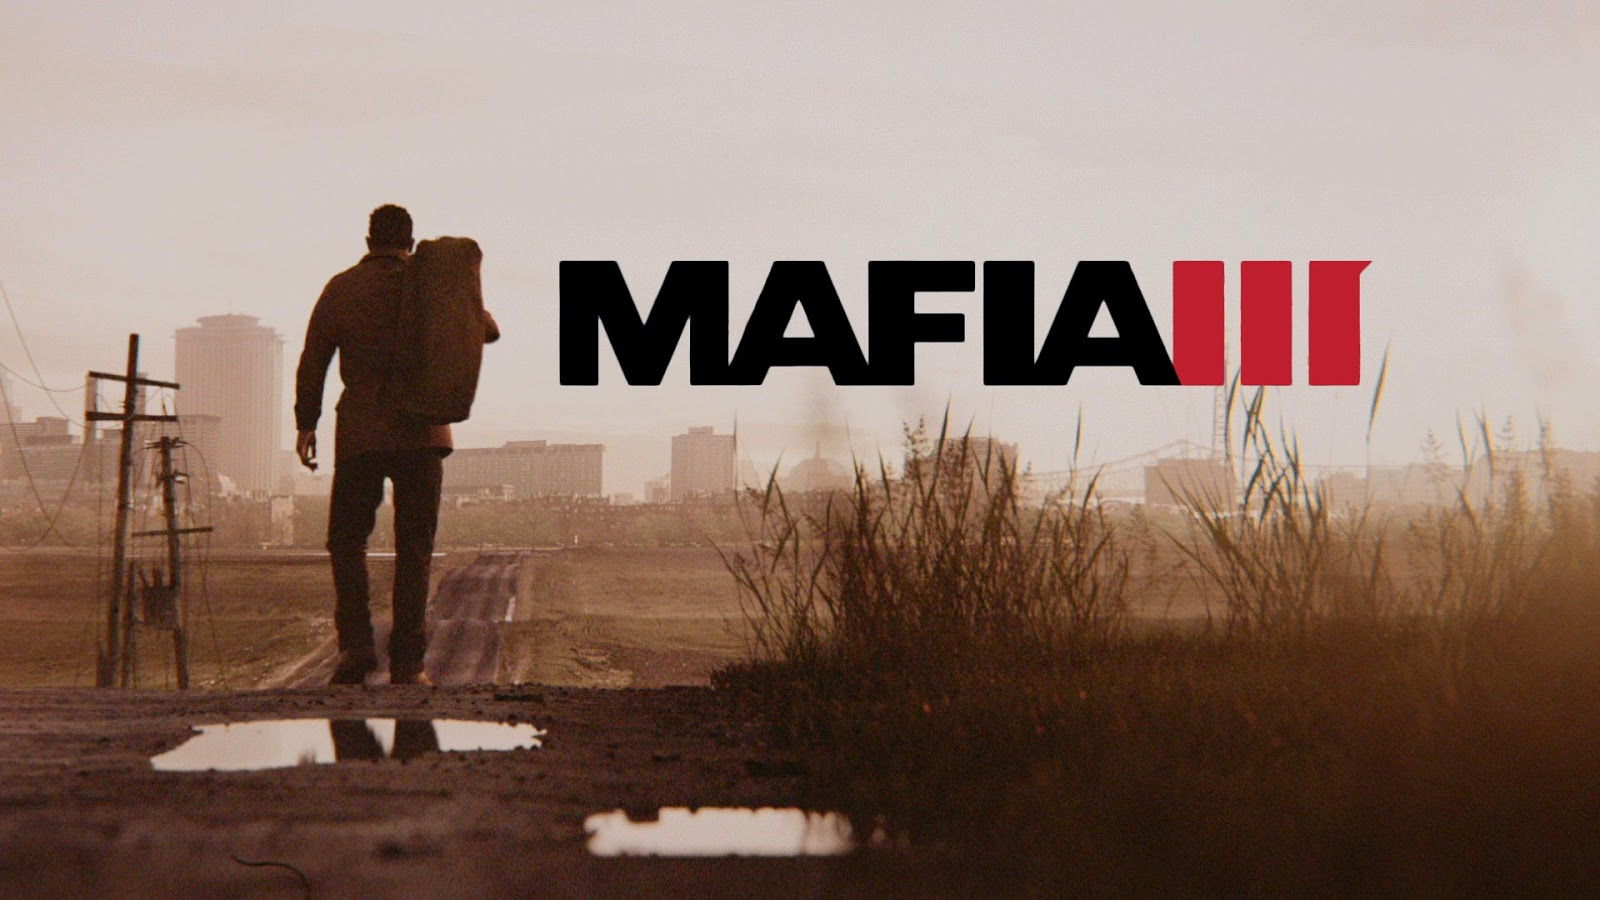 MAFIA III latest game hd wallpaper 1920x1080